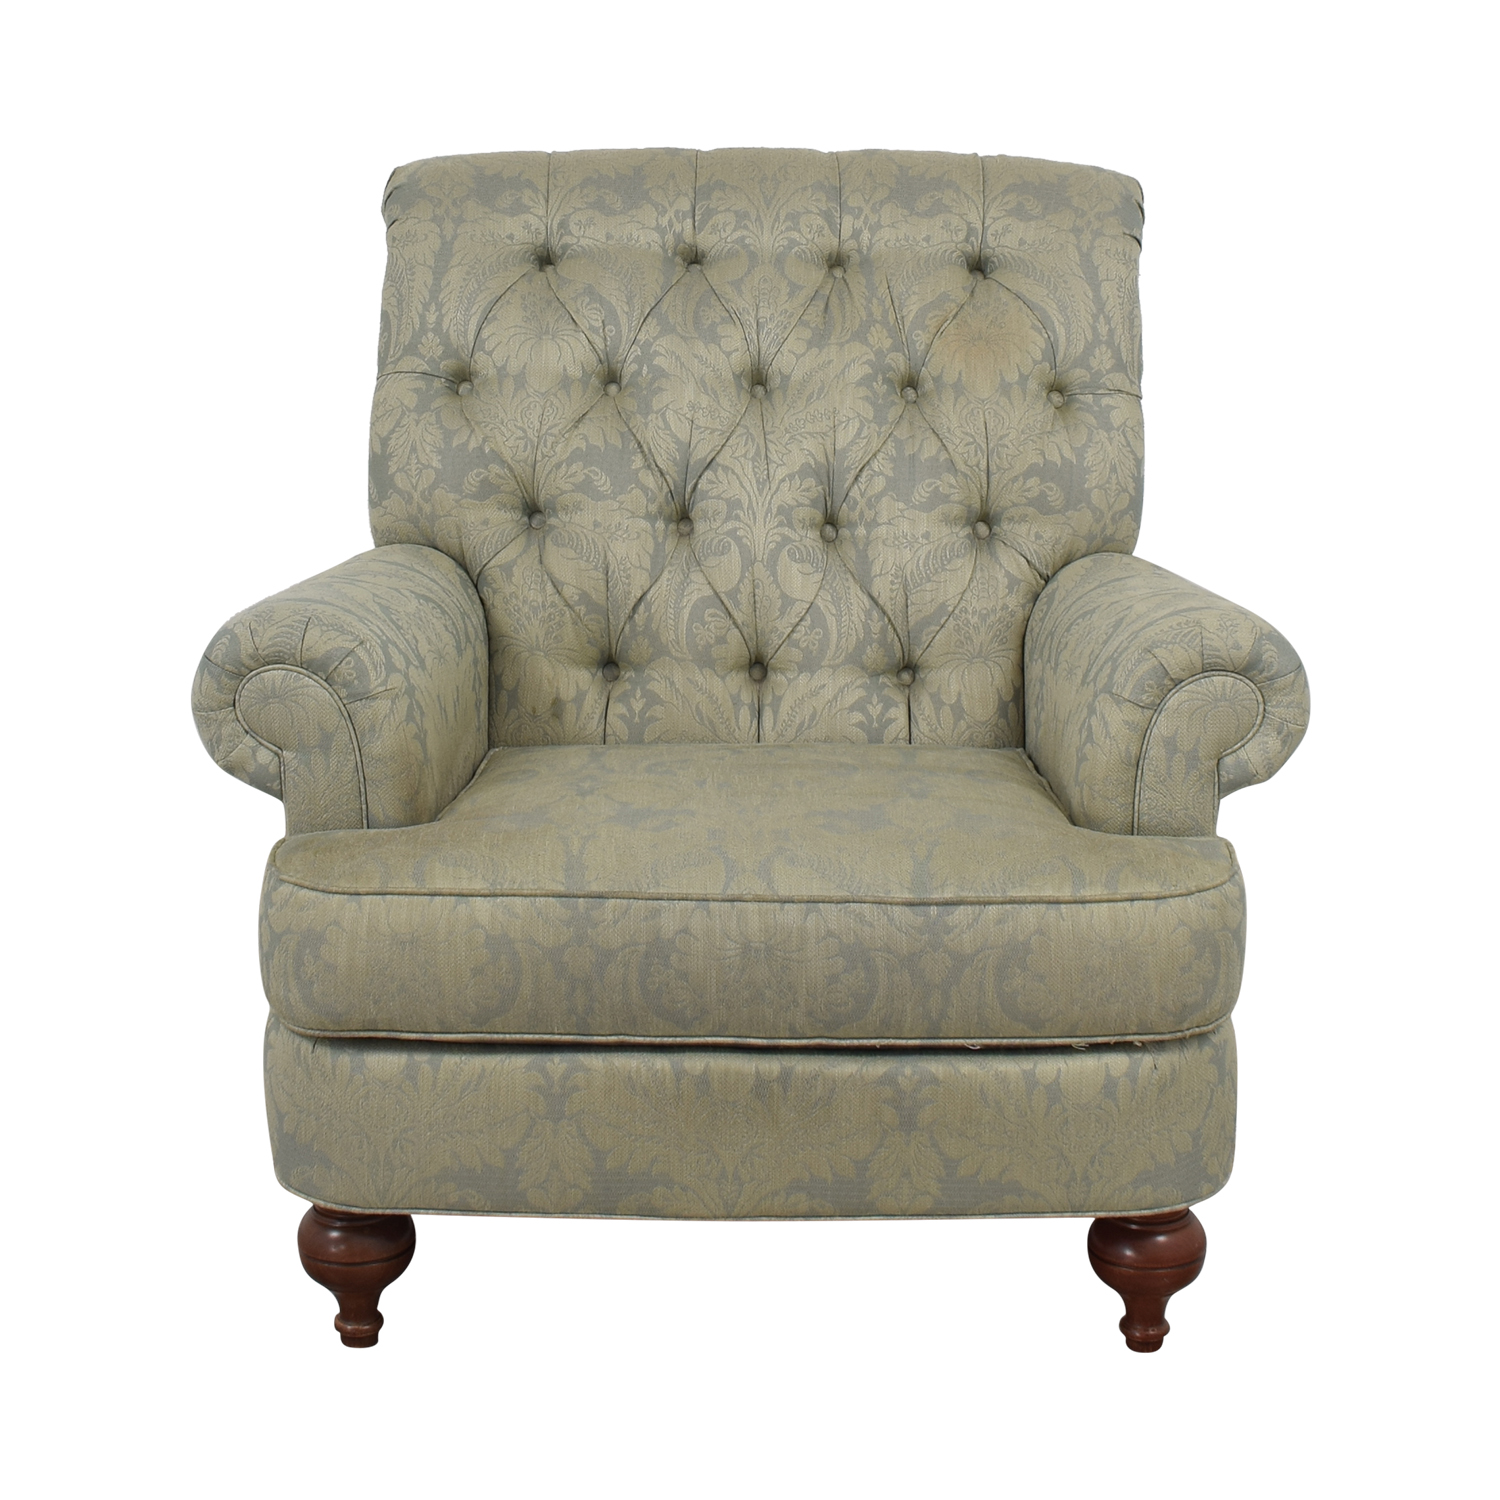 Ethan Allen Tufted Arm Chair / Chairs